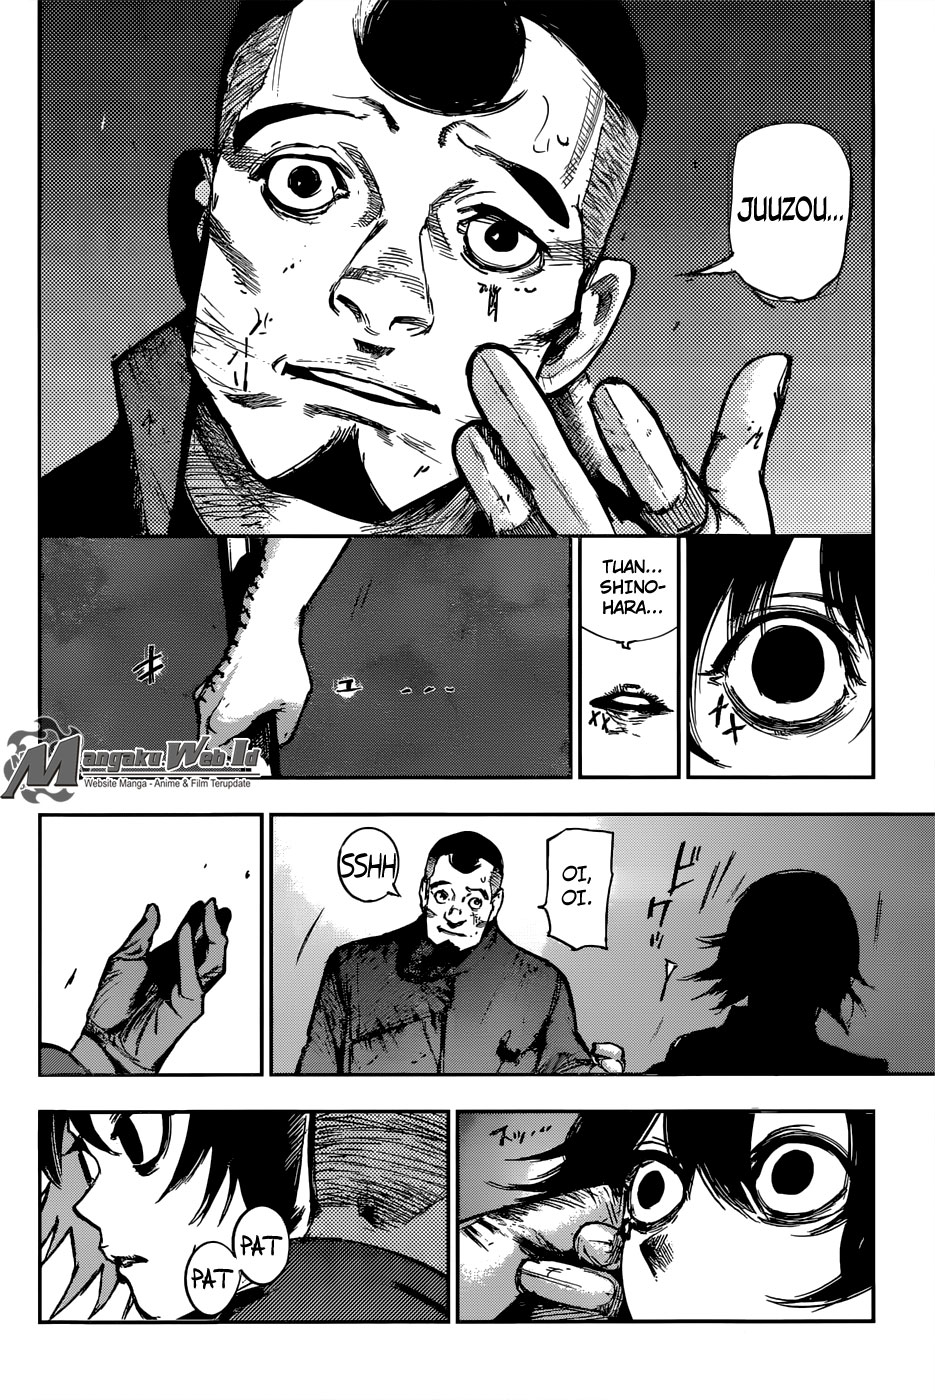 Tokyo Ghoul: Re Chapter 110-5